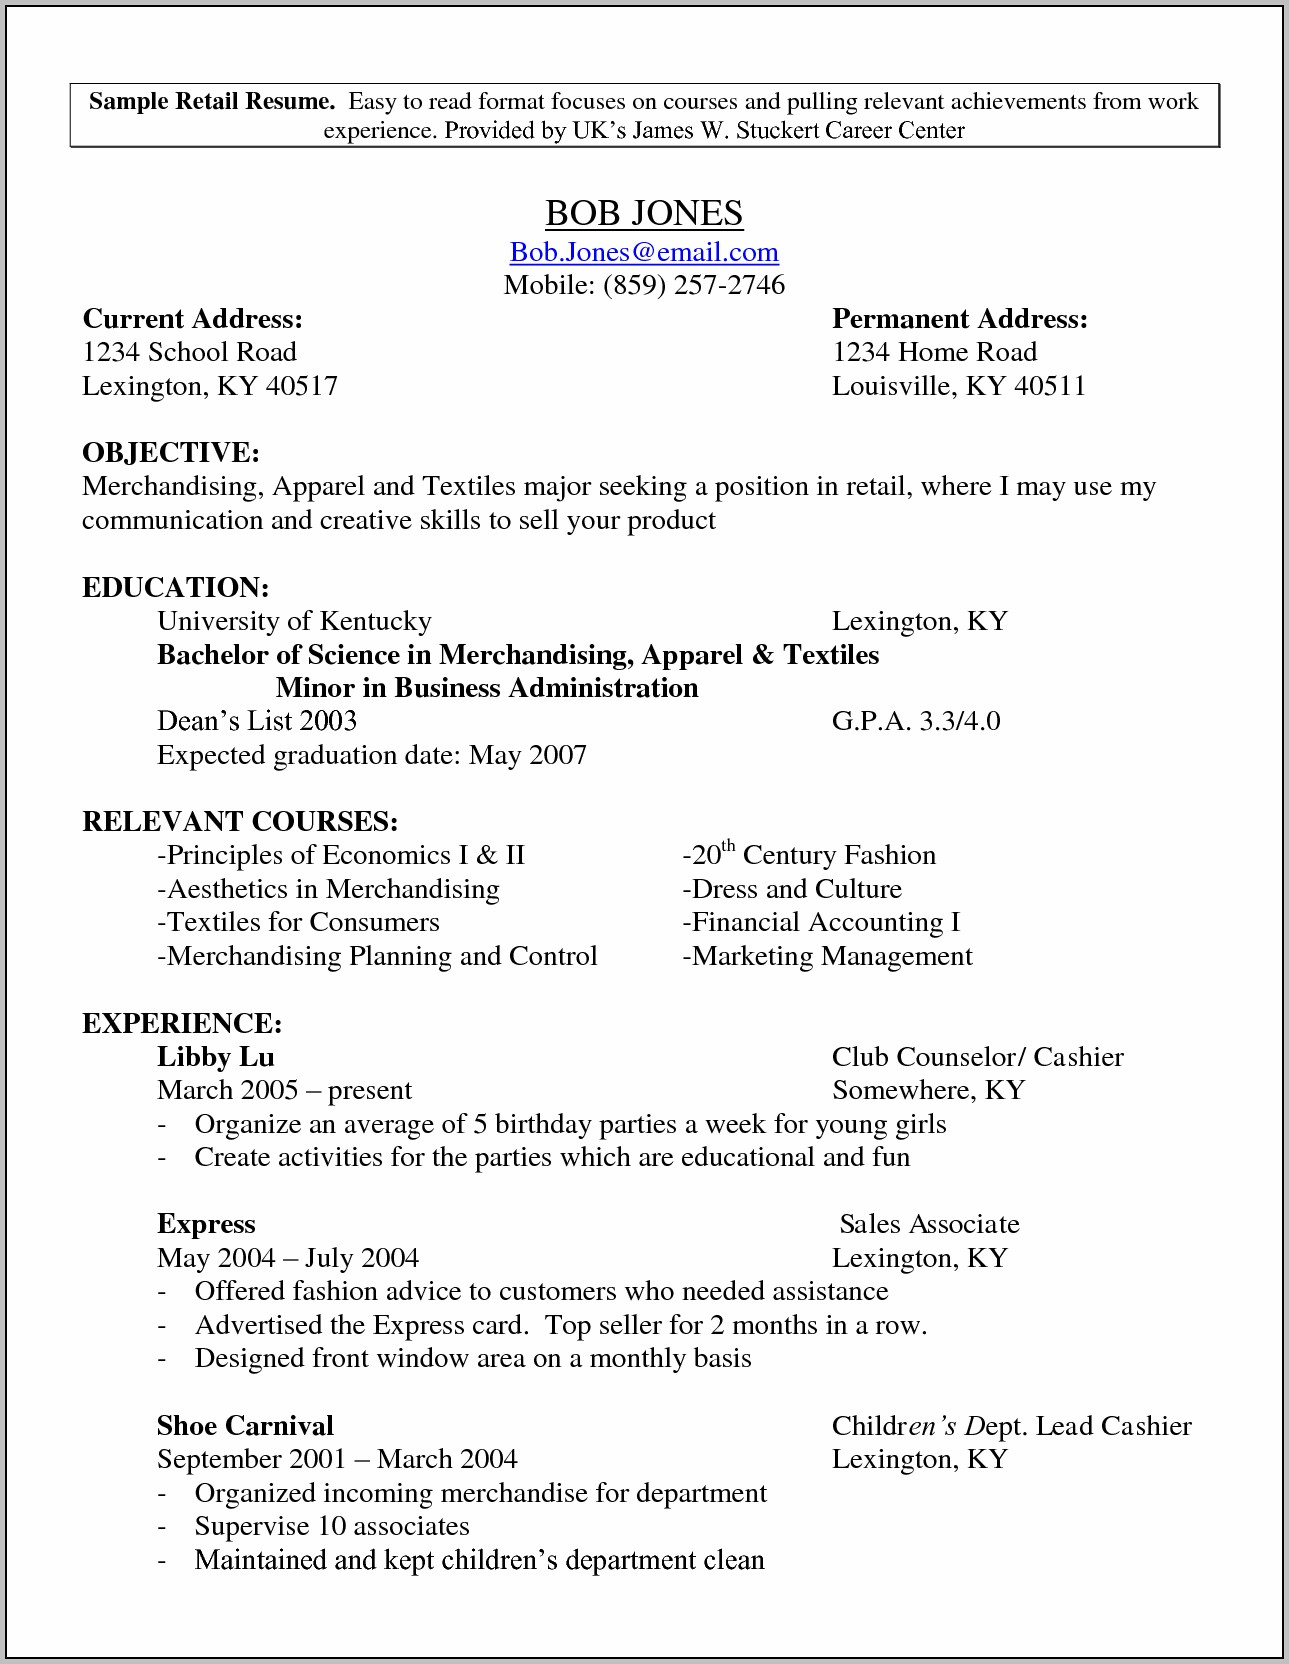 Resume Template For A Retail Job